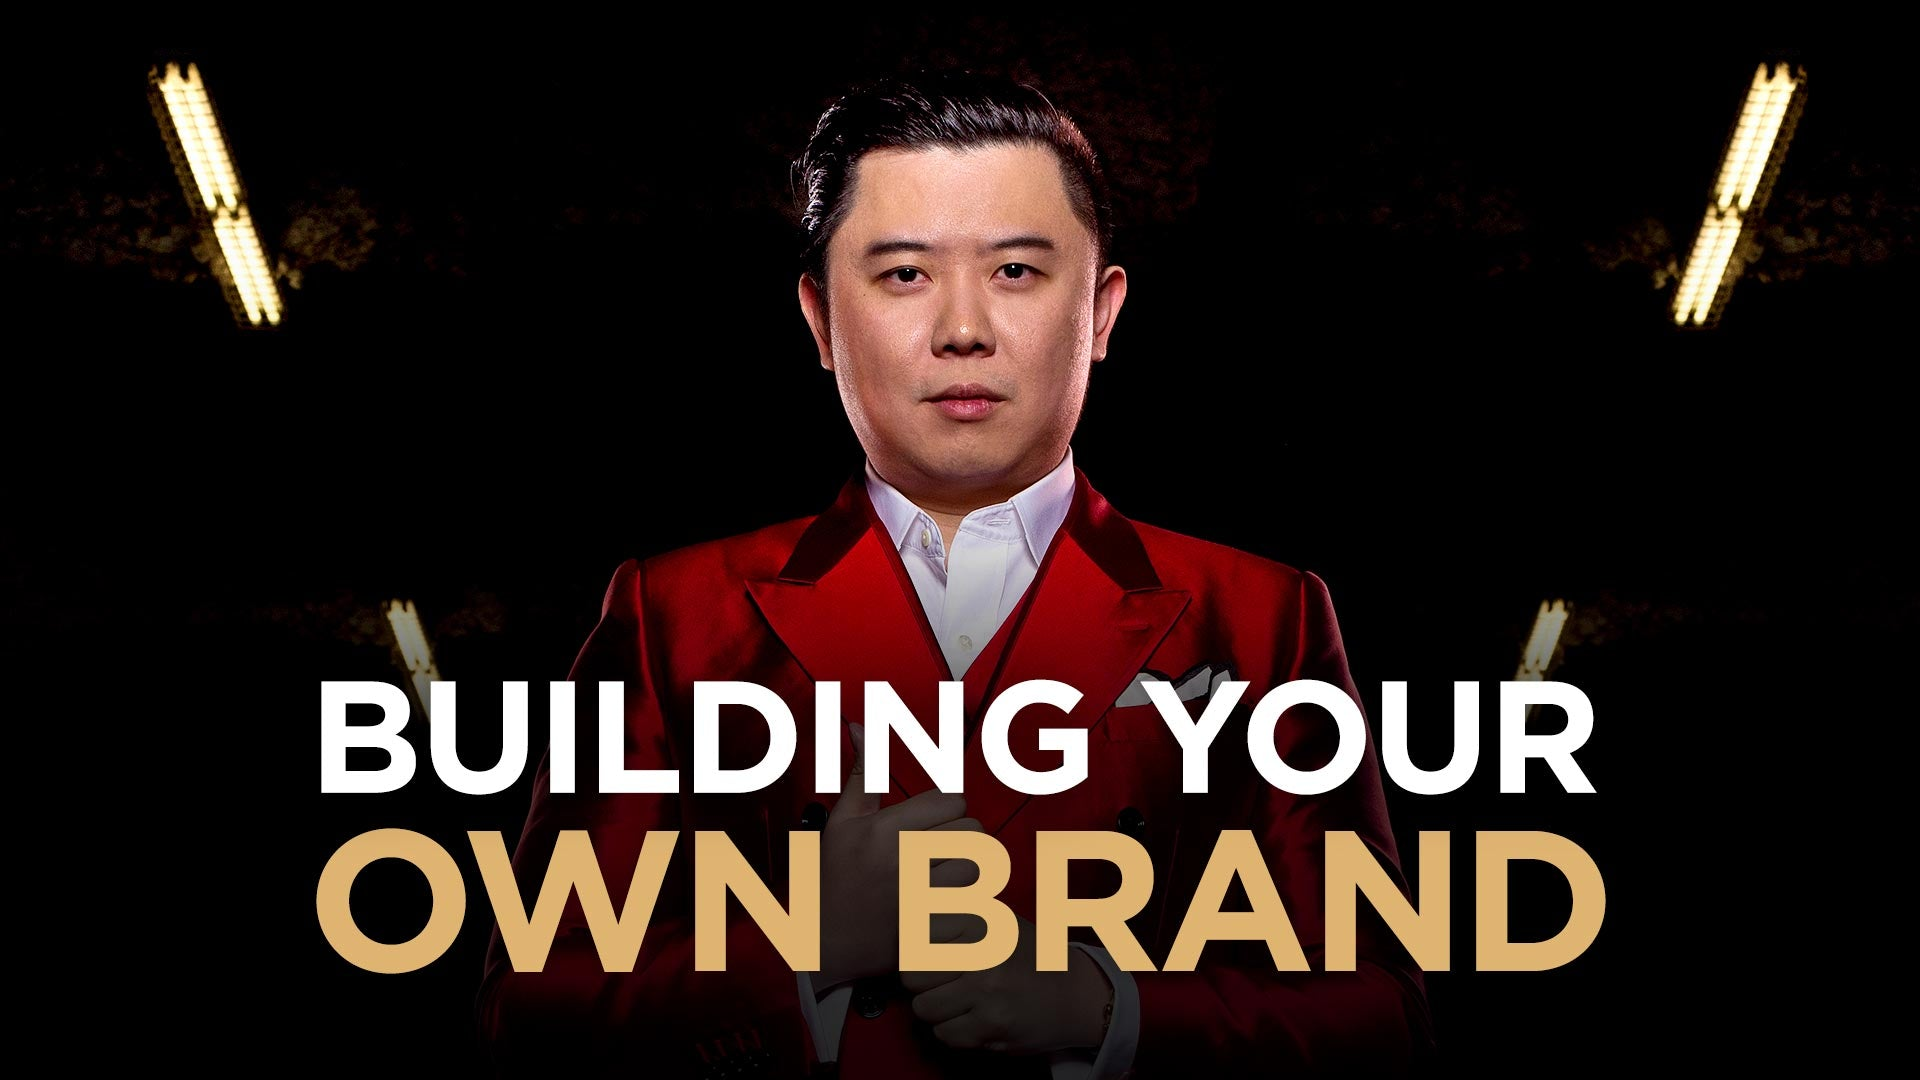 Are You Building Your Personal Brand By Accident?